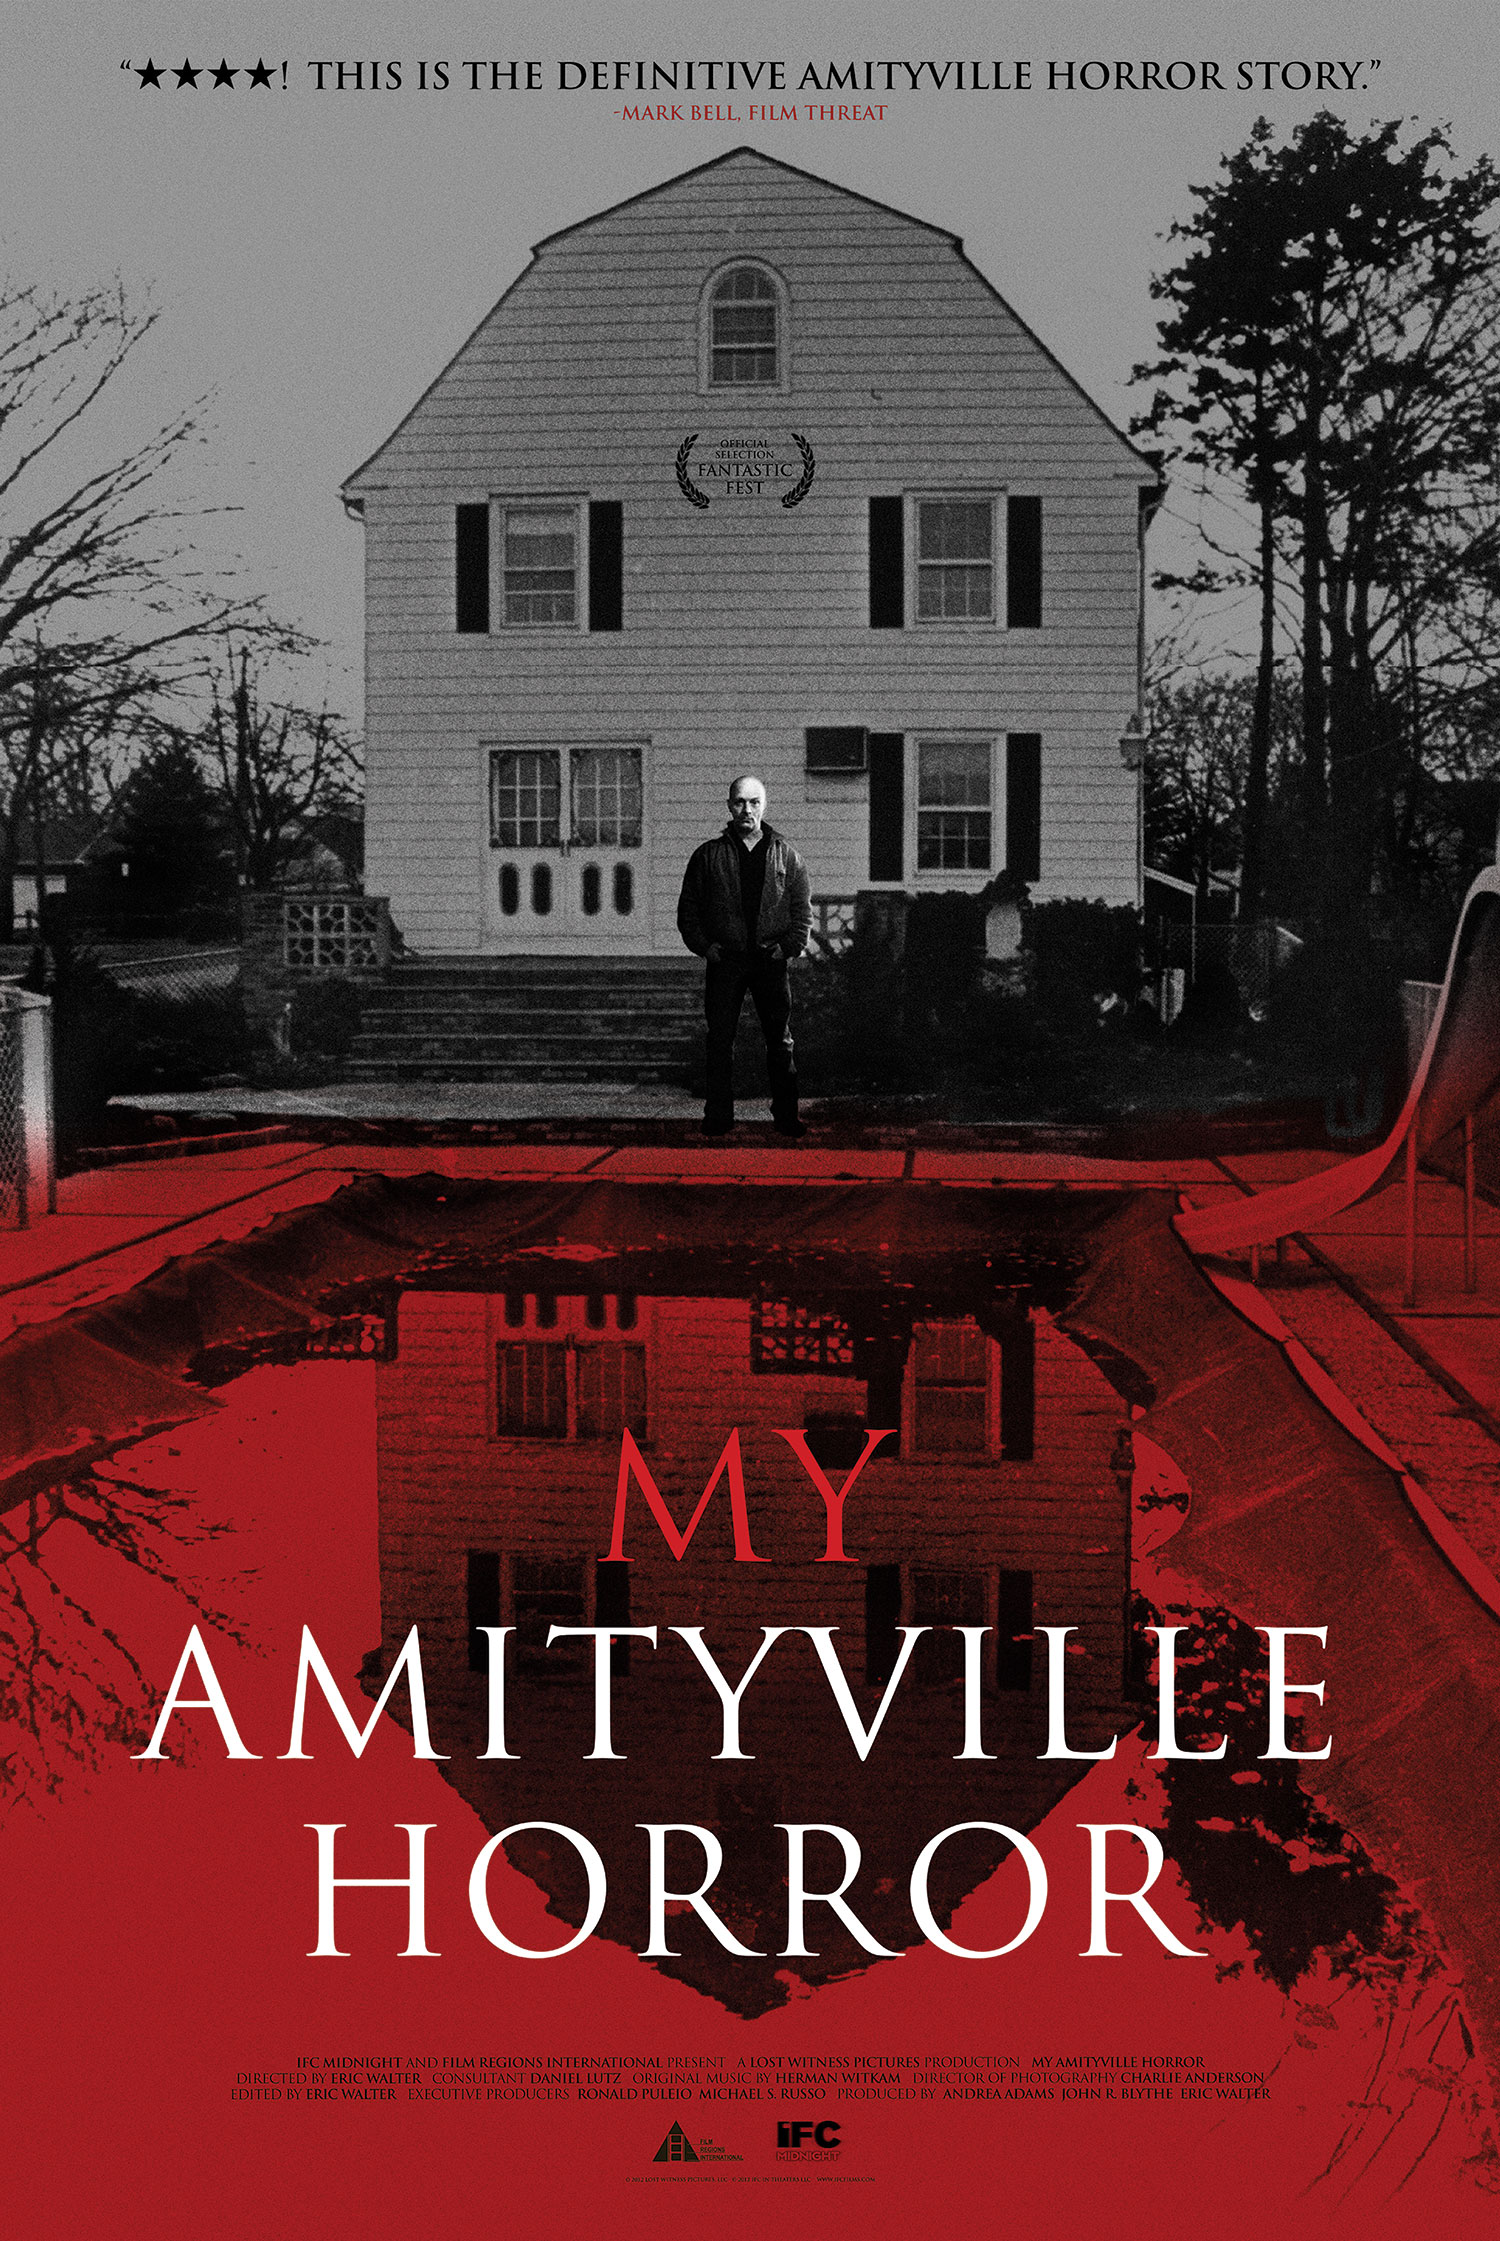 a review of the book the amityville horror Amazonca - buy the amityville horror trilogy at a low price free shipping on qualified orders see reviews & details on a wide selection of blu-ray & dvds, both new.